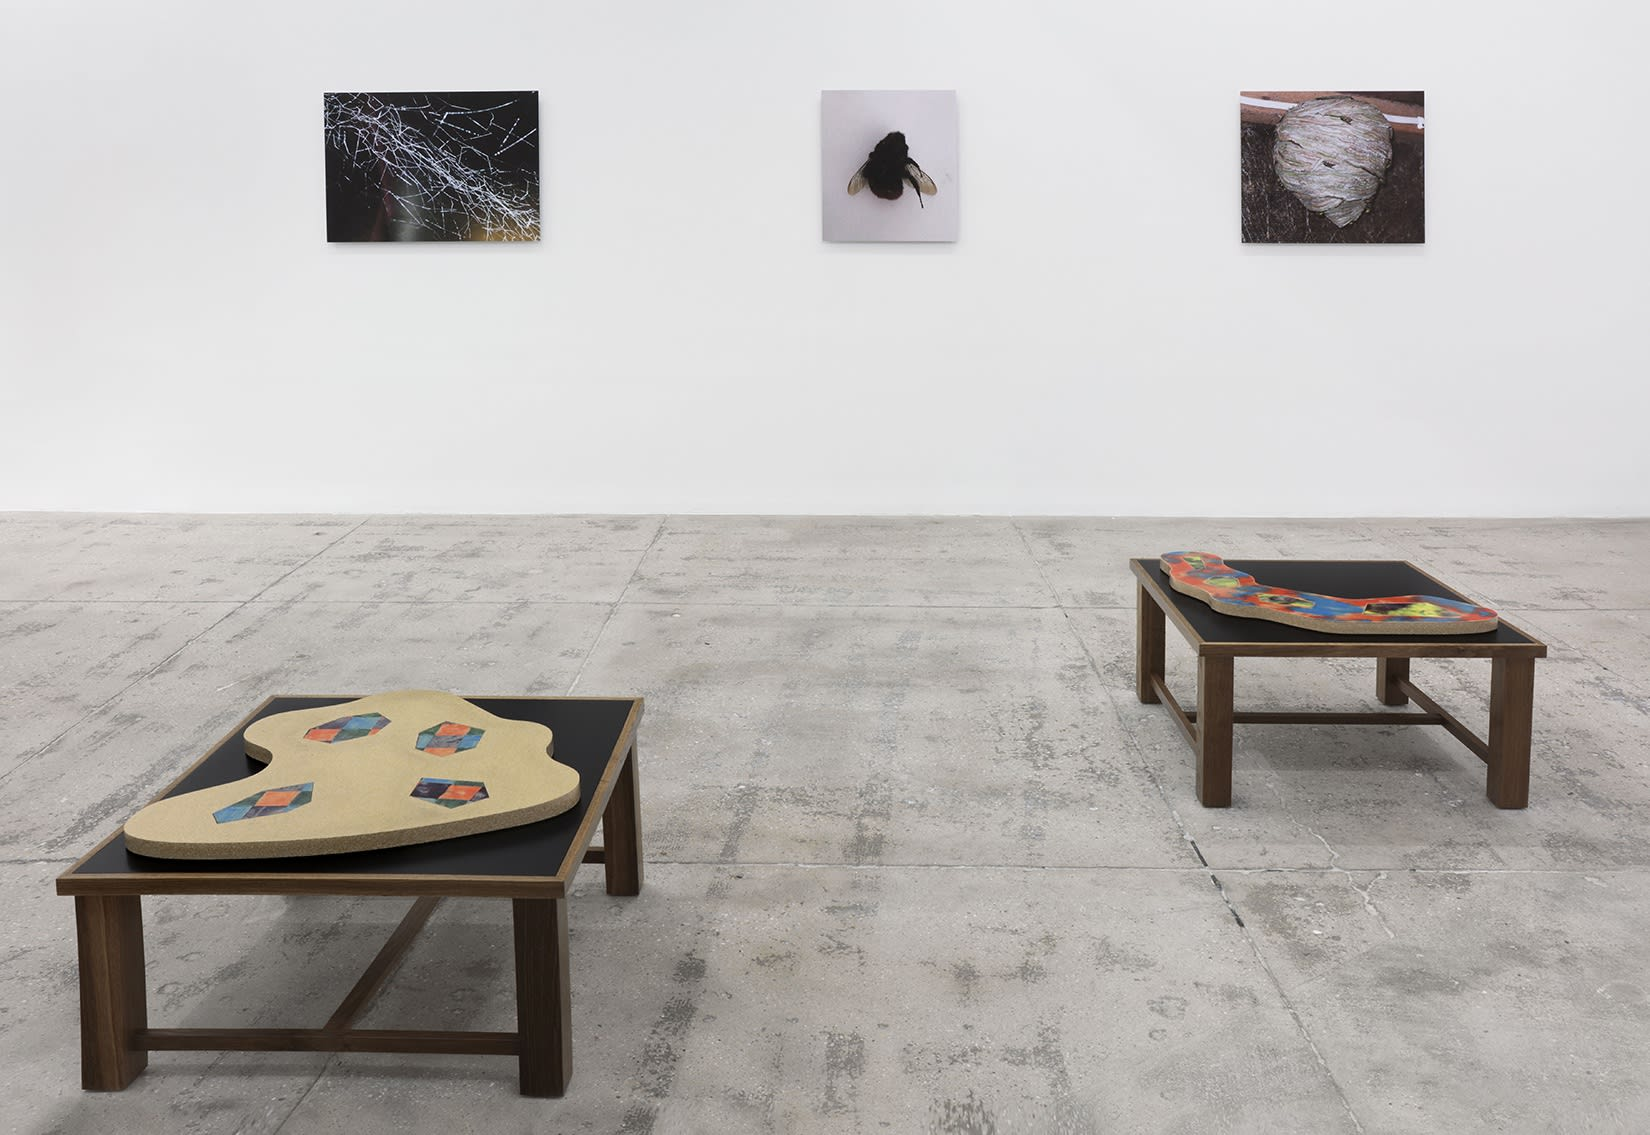 3 photographs hang on a white wall and 2 flat sculptures sit on wooden platforms in the foreground.